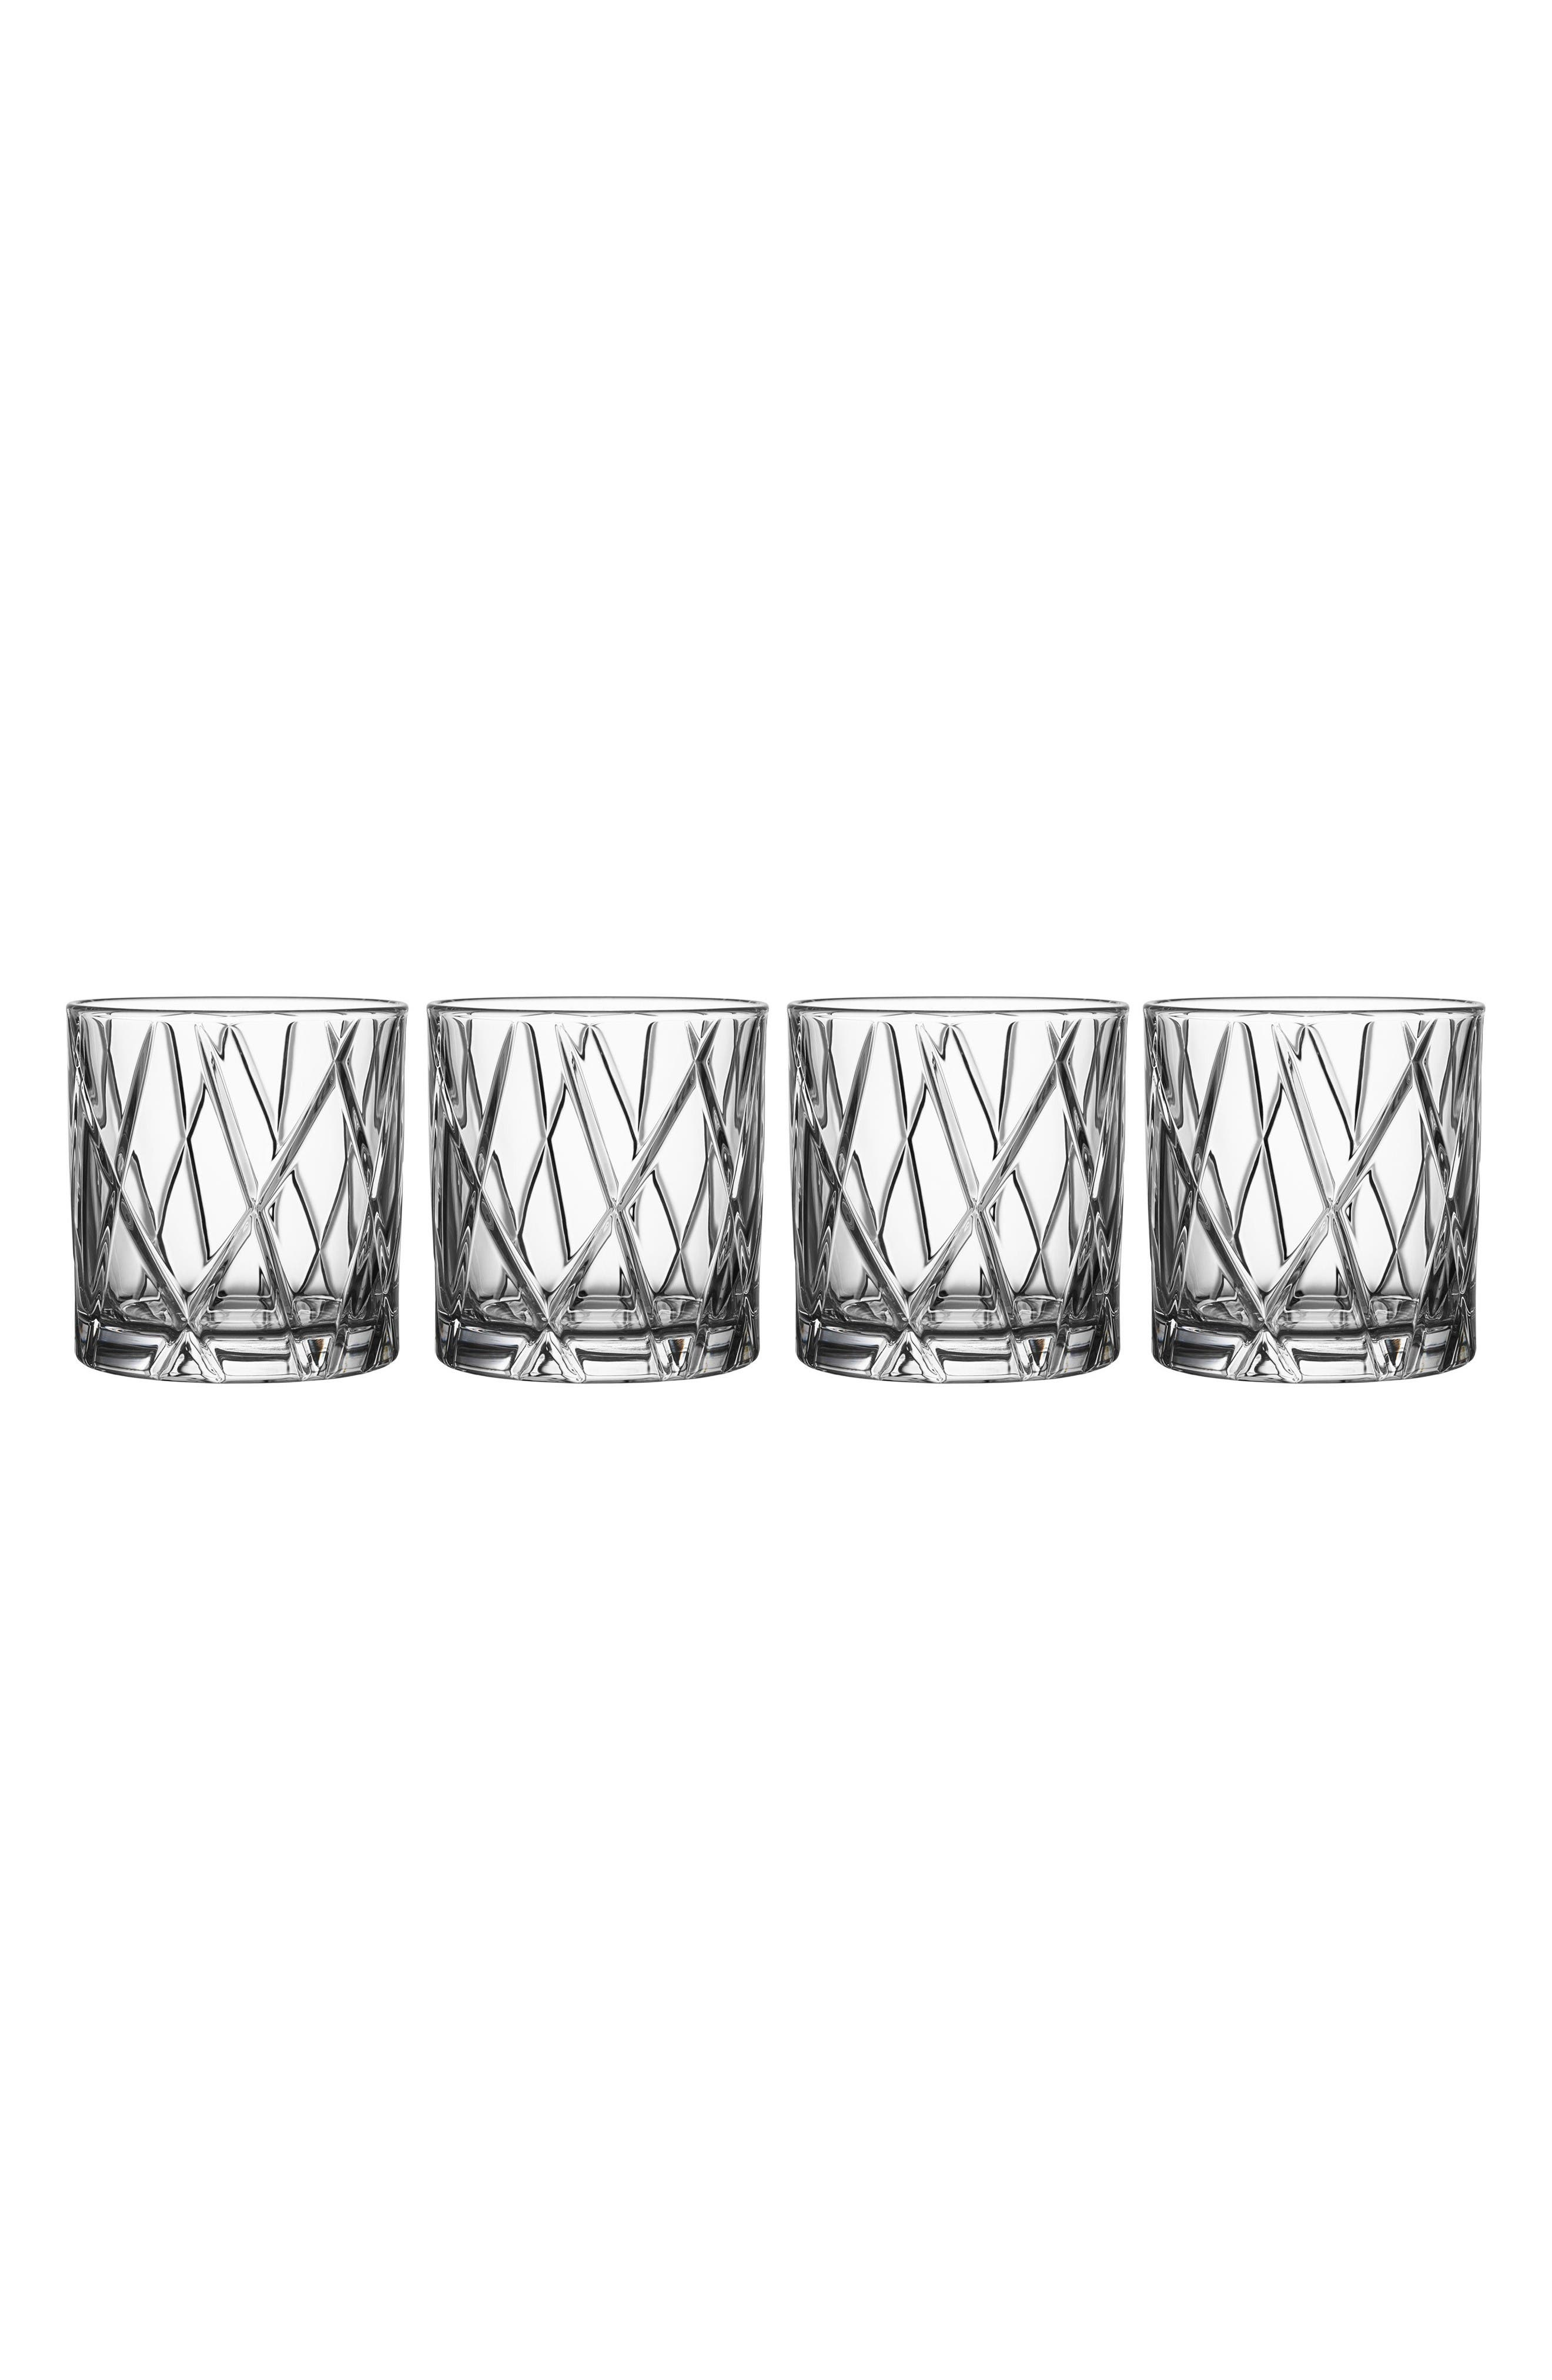 City Set of 4 Crystal Double Old Fashioned Glasses,                         Main,                         color, Clear